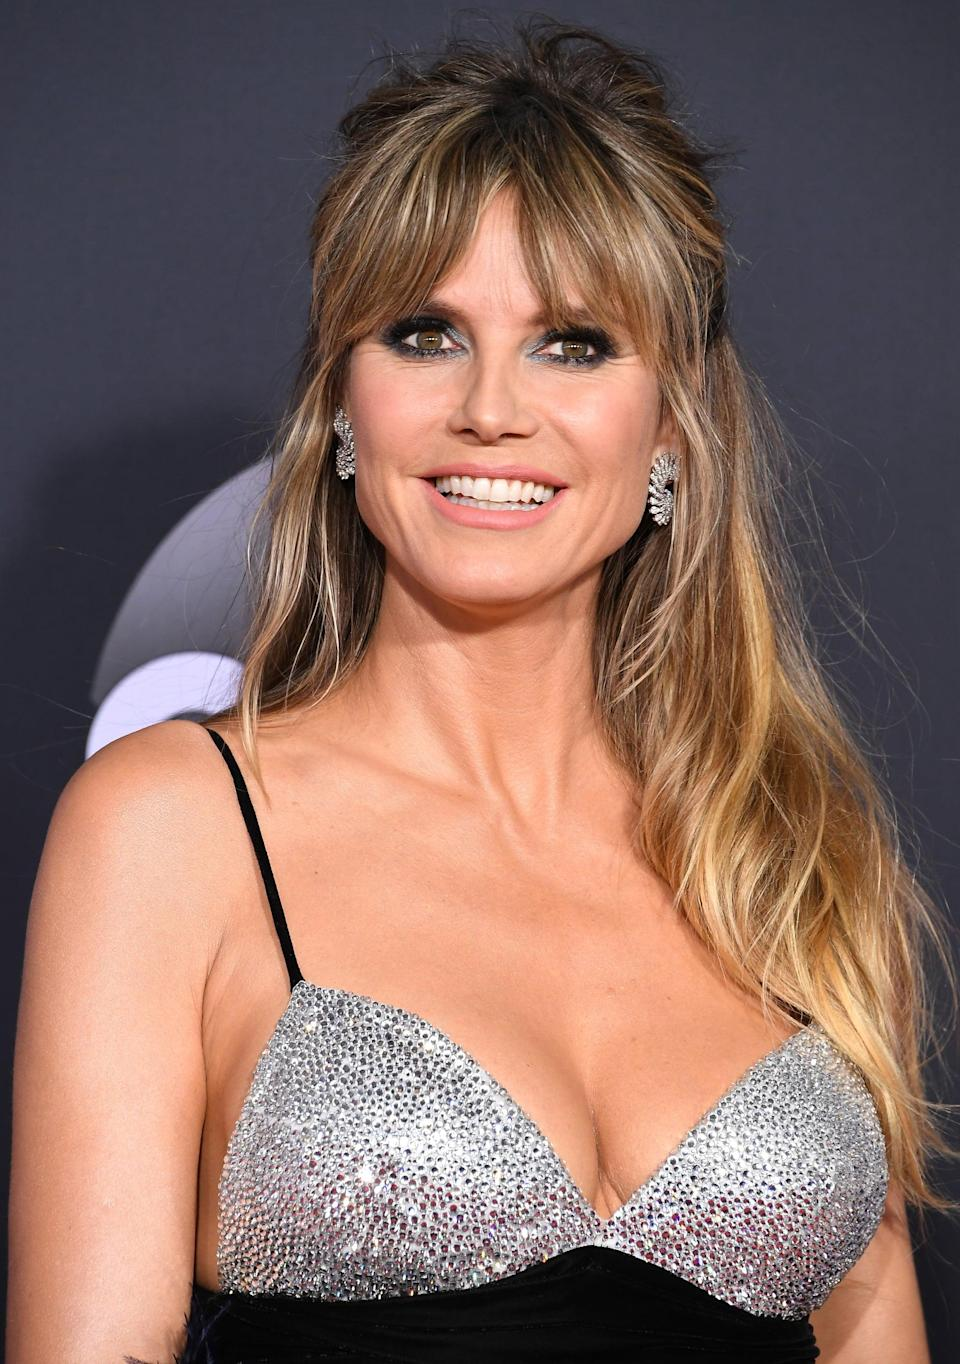 """<p>In 2008, the model had her then-husband Seal's name tattooed on her right forearm. The couple divorced in 2014, and <a href=""""https://people.com/celebrity/heidi-klum-removing-seal-tattoo/"""" class=""""link rapid-noclick-resp"""" rel=""""nofollow noopener"""" target=""""_blank"""" data-ylk=""""slk:Klum has since had the tattoo removed"""">Klum has since had the tattoo removed</a>.</p>"""